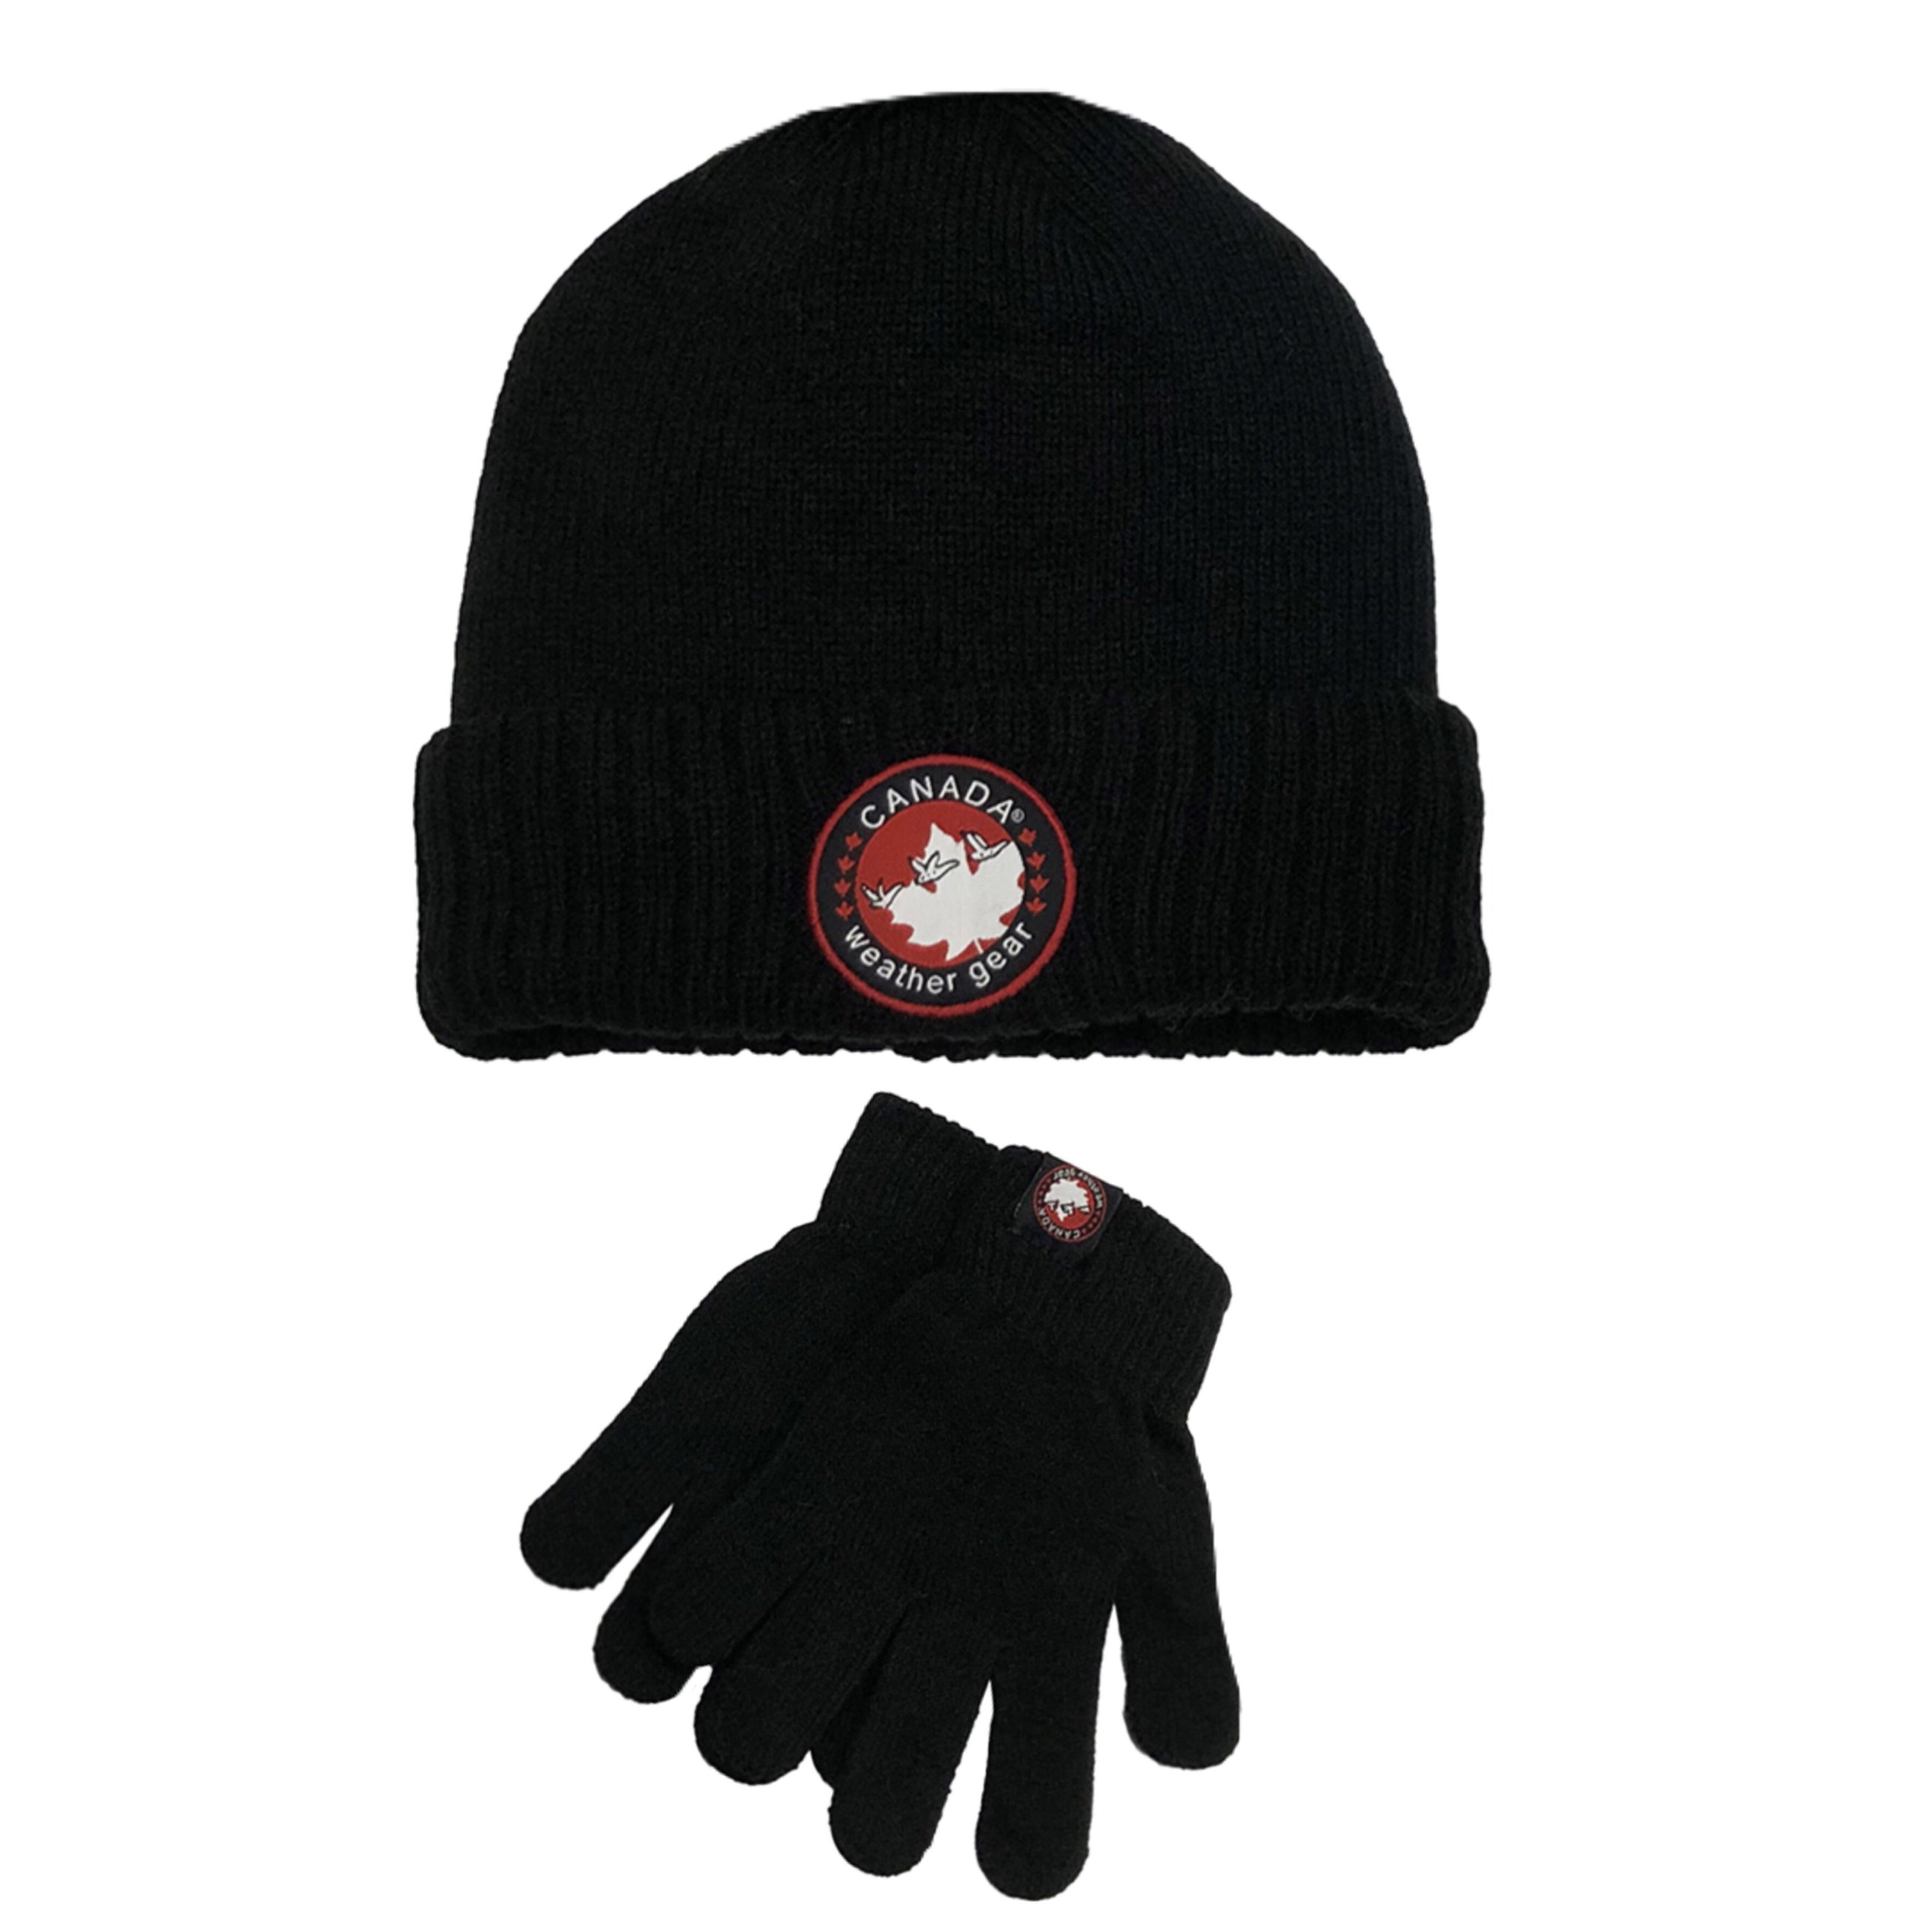 Boys CANADA WEATHER GEAR Hat and Gloves Set